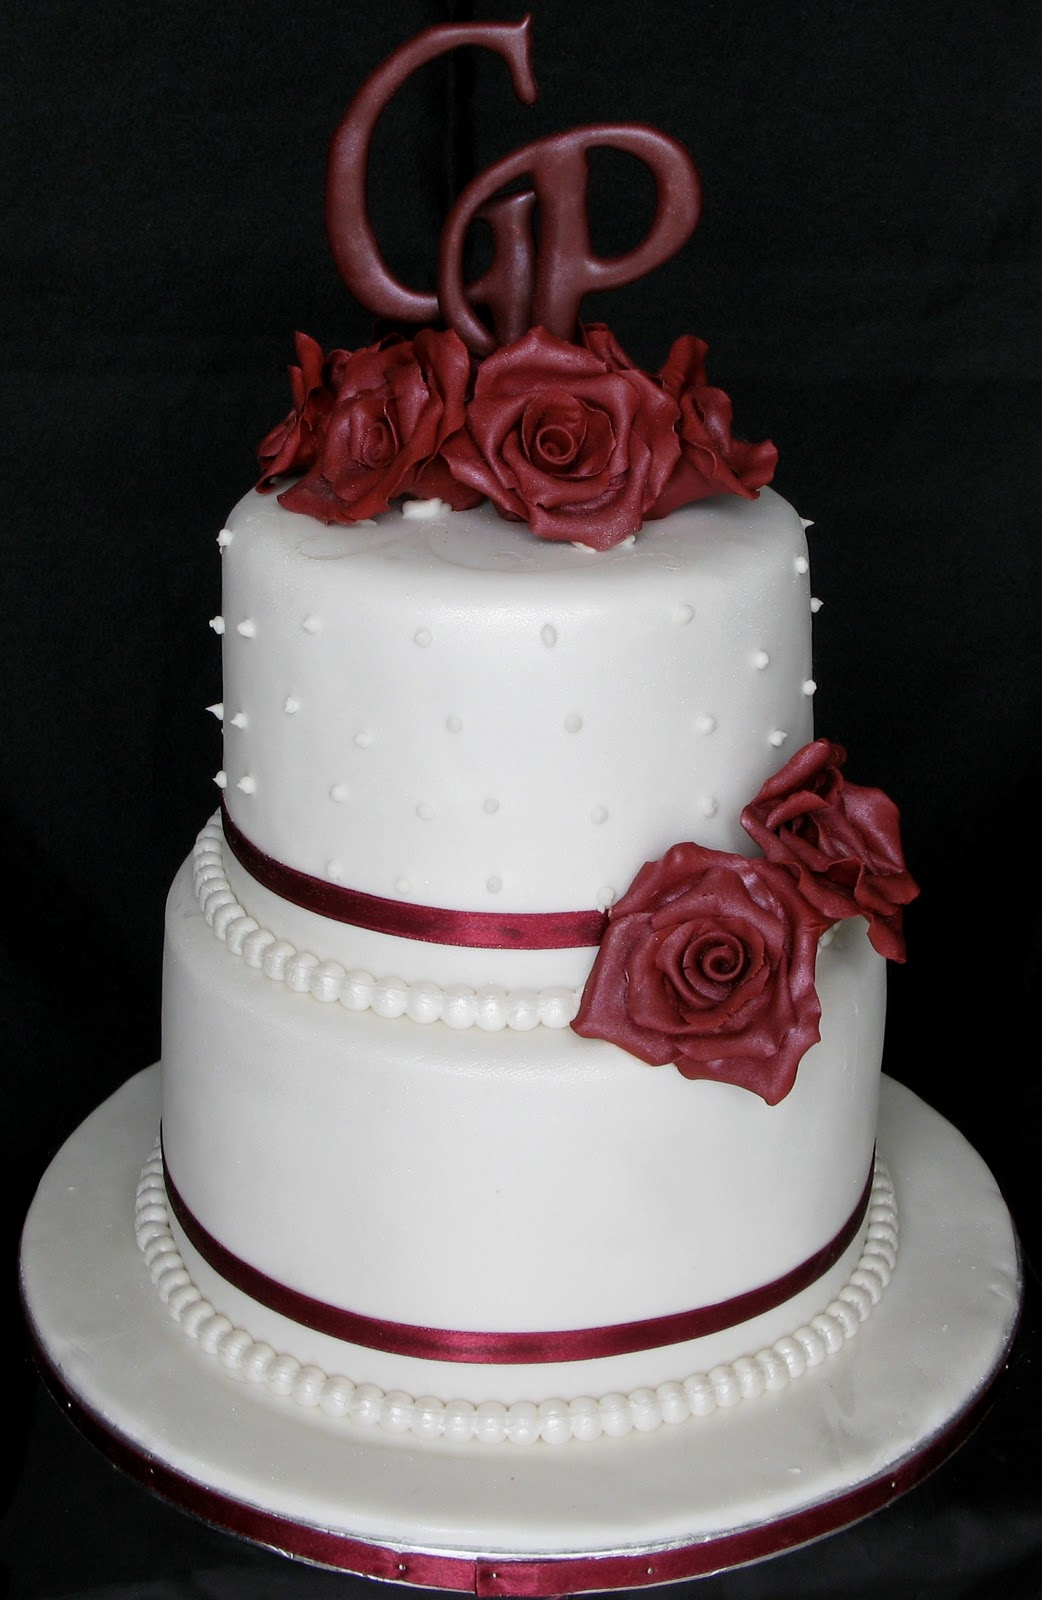 Sugarcraft by soni october 2011 for Wedding cake layer